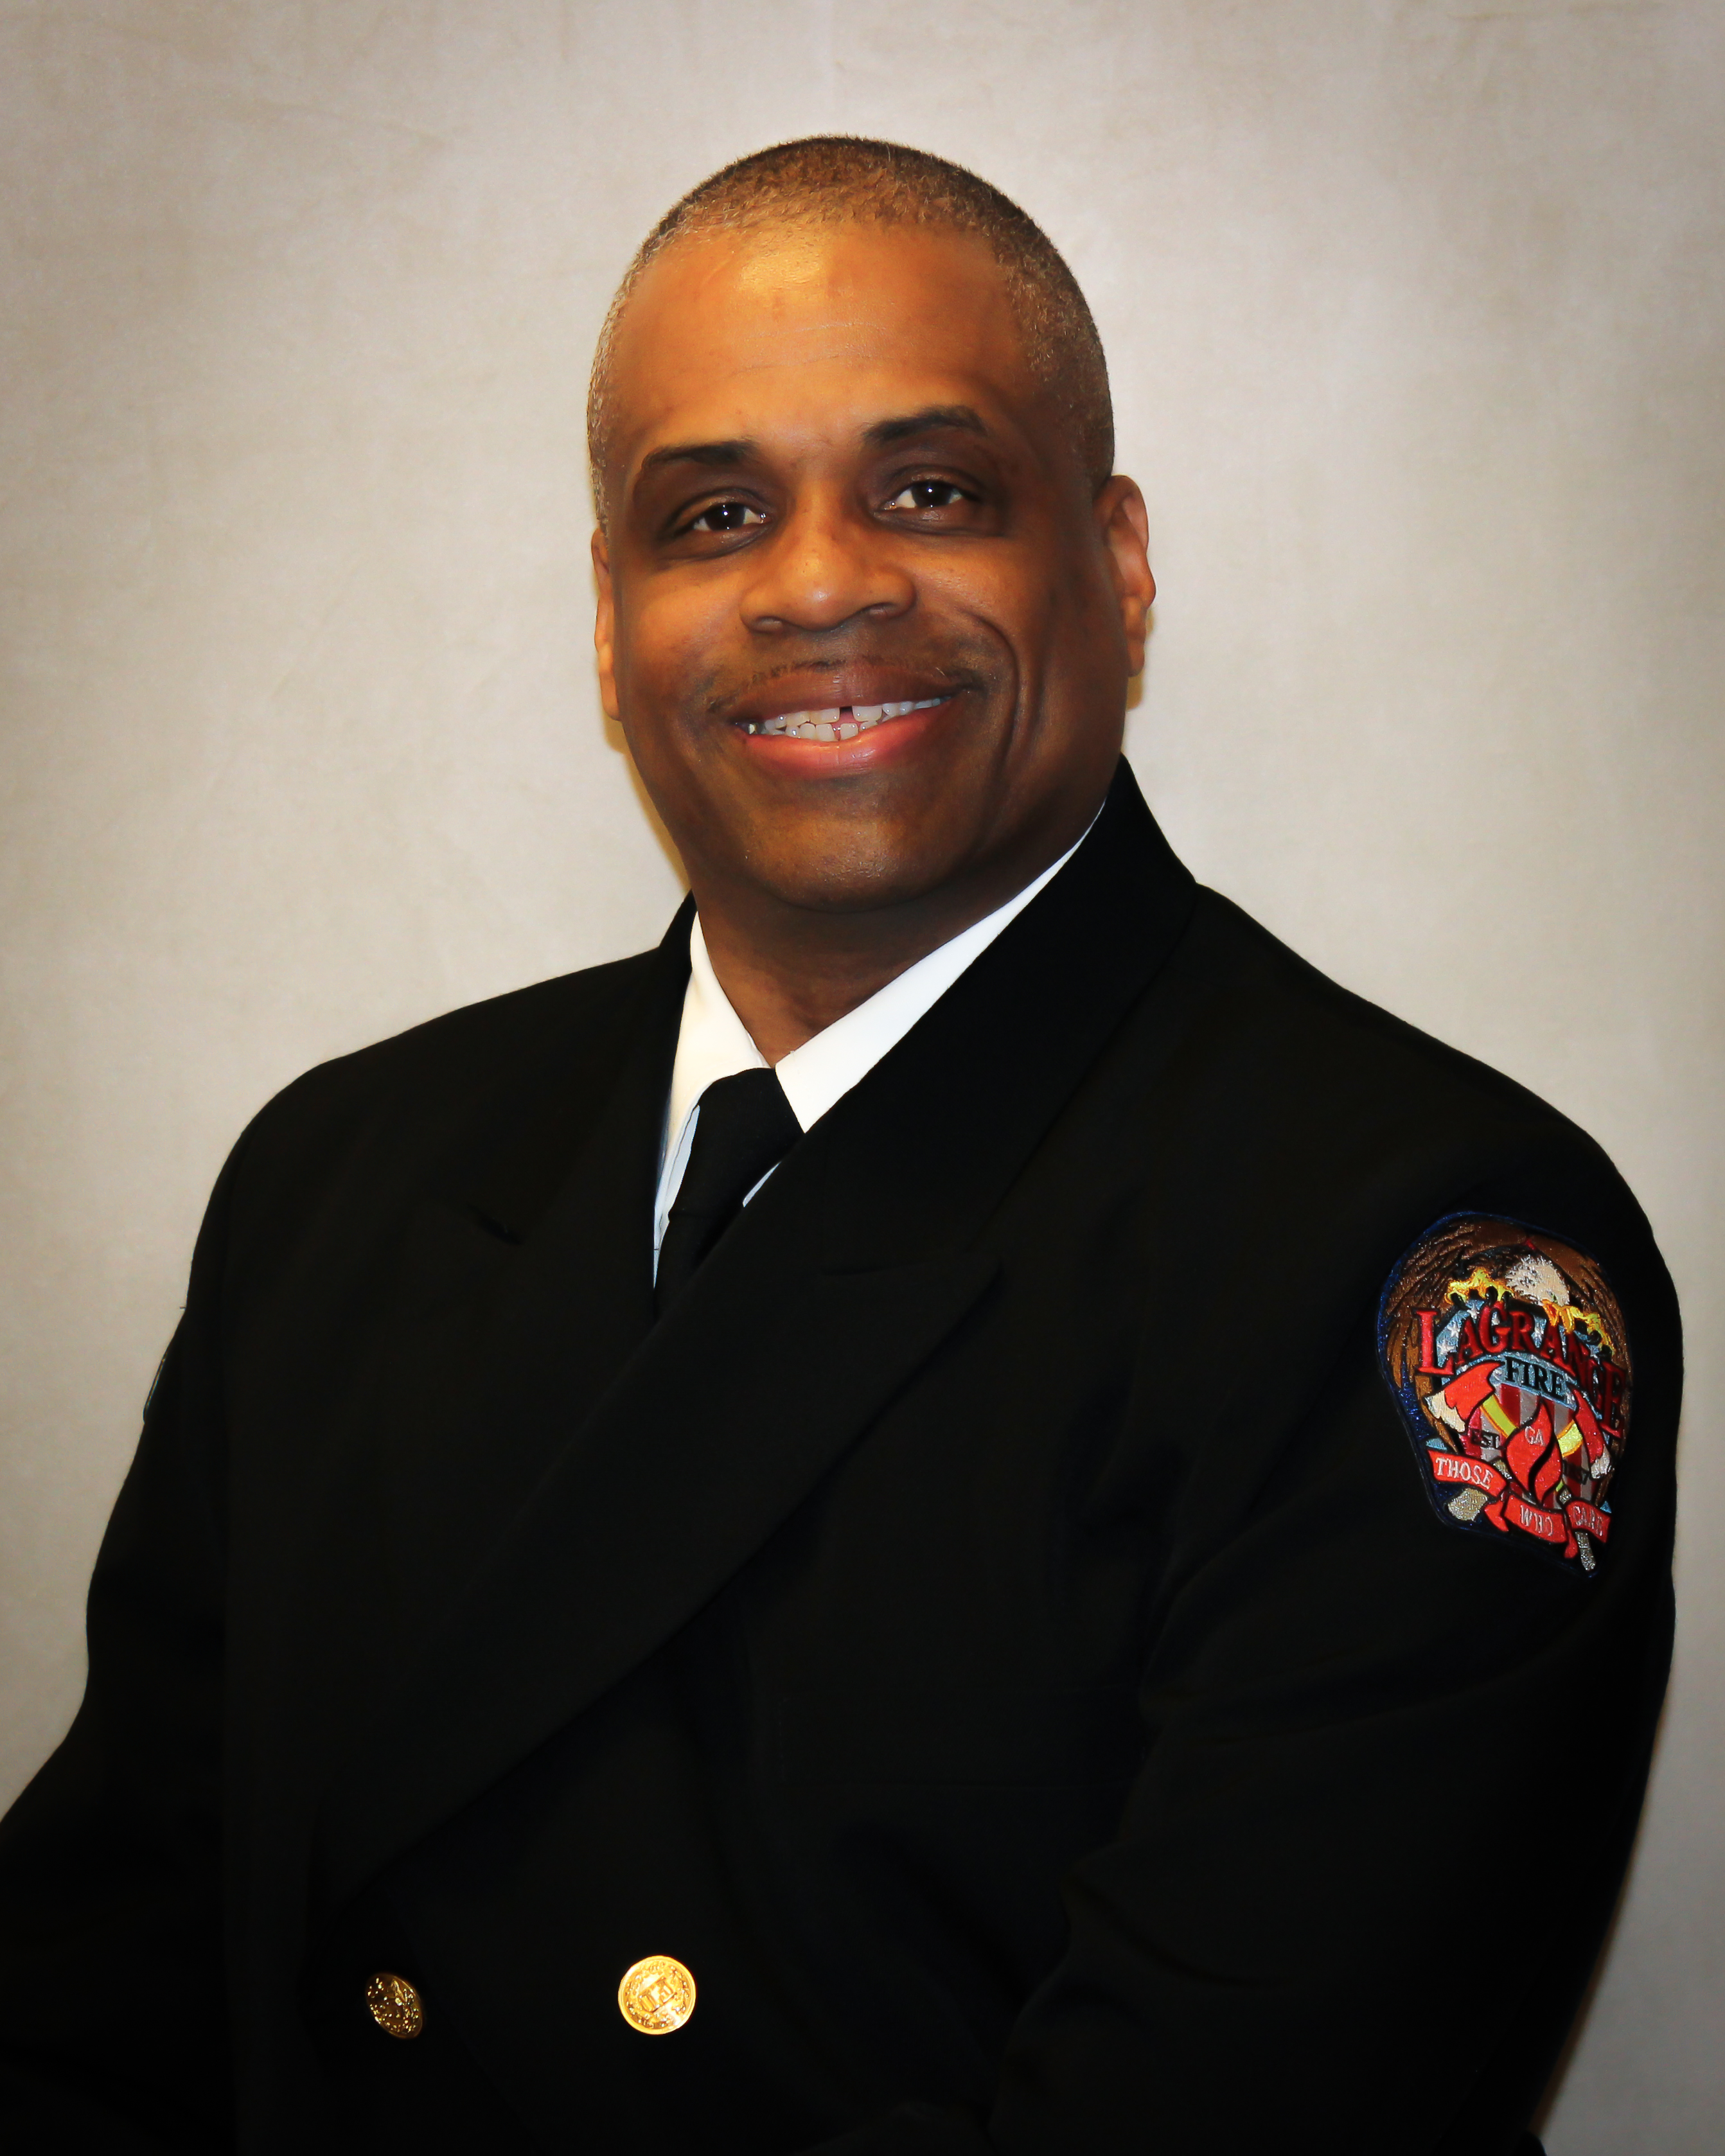 Willie Bradfield - Deputy Chief/EMT